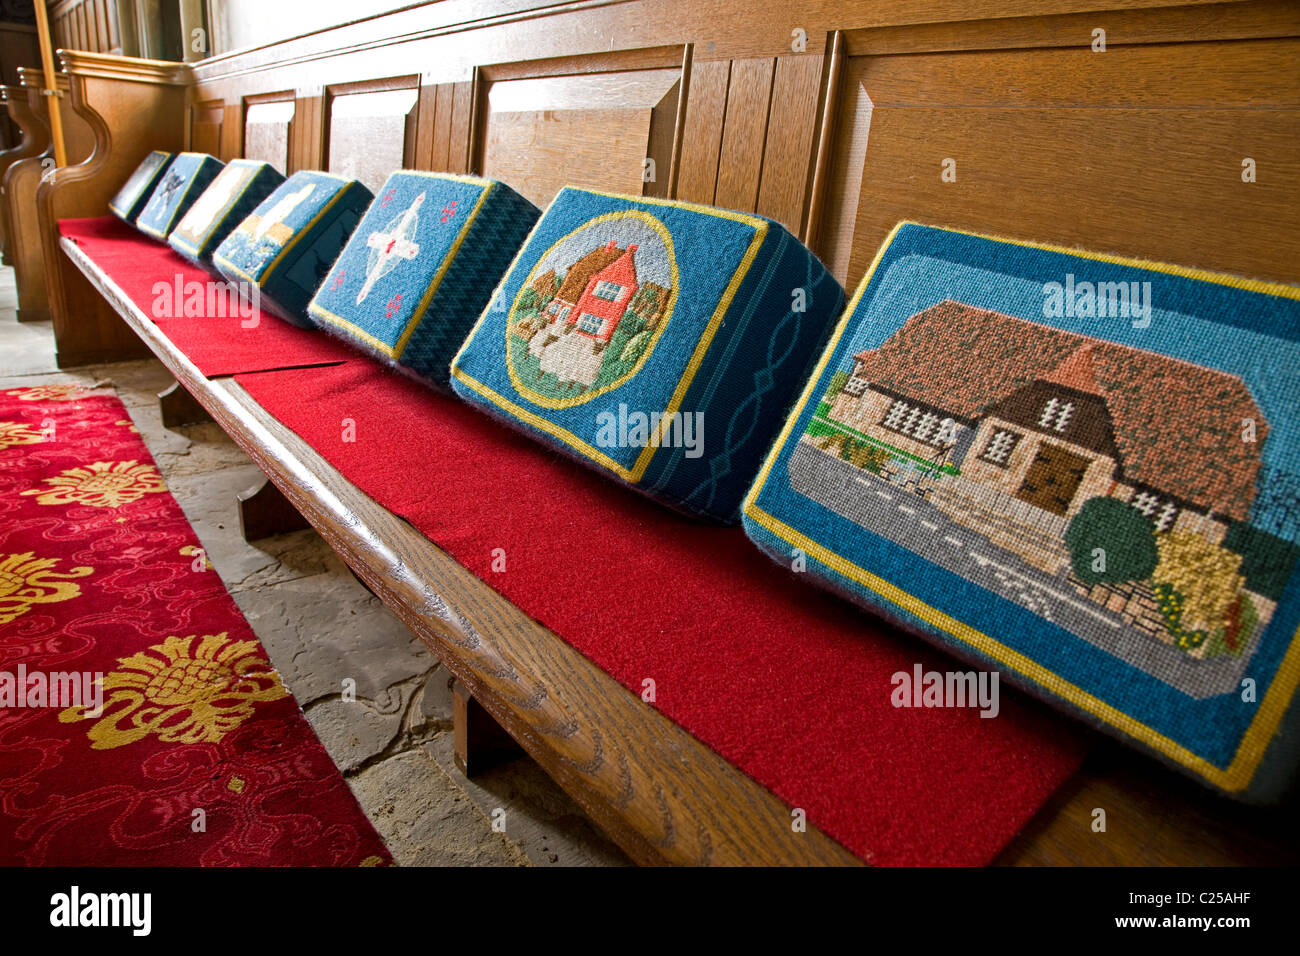 Embroidered tapestry kneelers in All Saints Church in Tealby - Stock Image